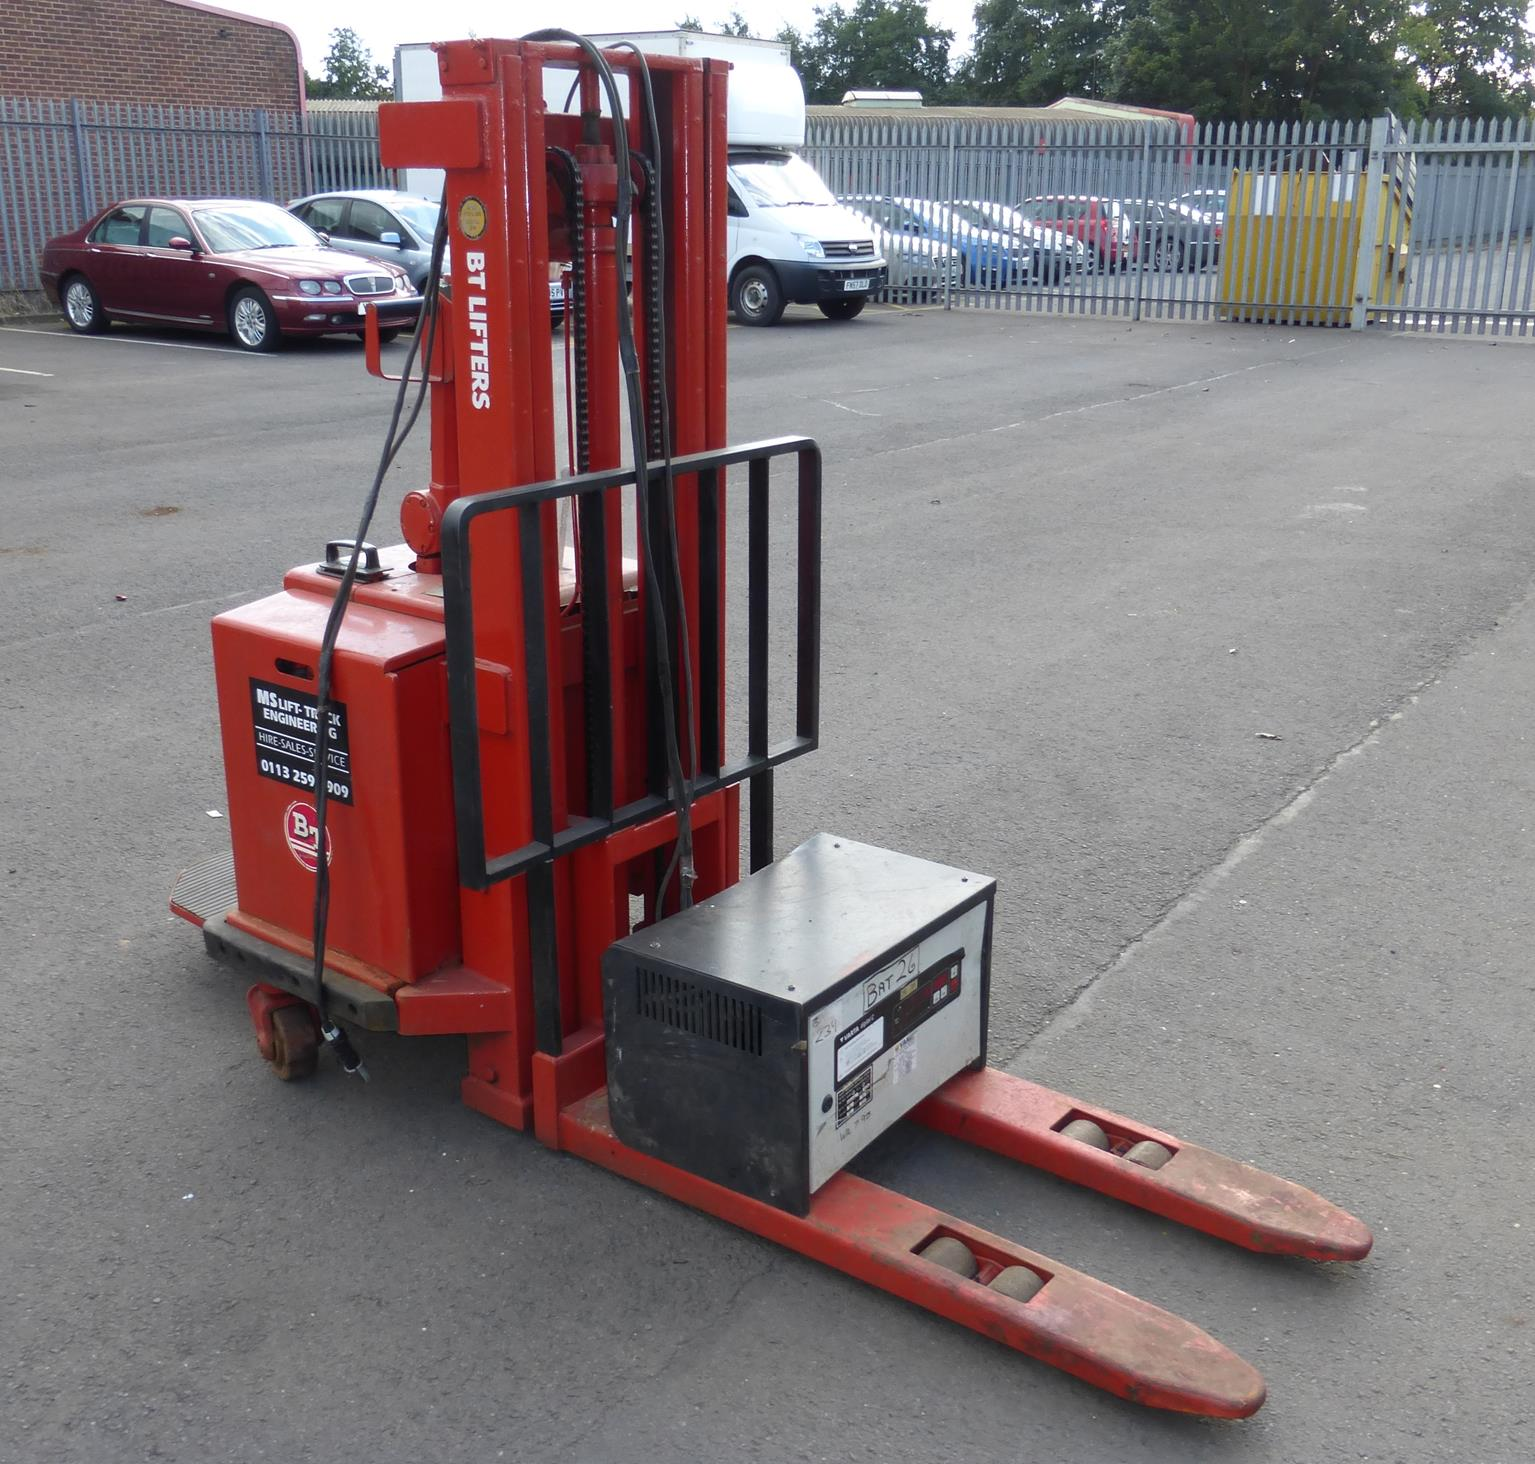 Lot 31 - * BT Rolatruc Model BT LSV1000, Max Capacity 1000Kg c/w Battery Charger (Spares or Repair) Please